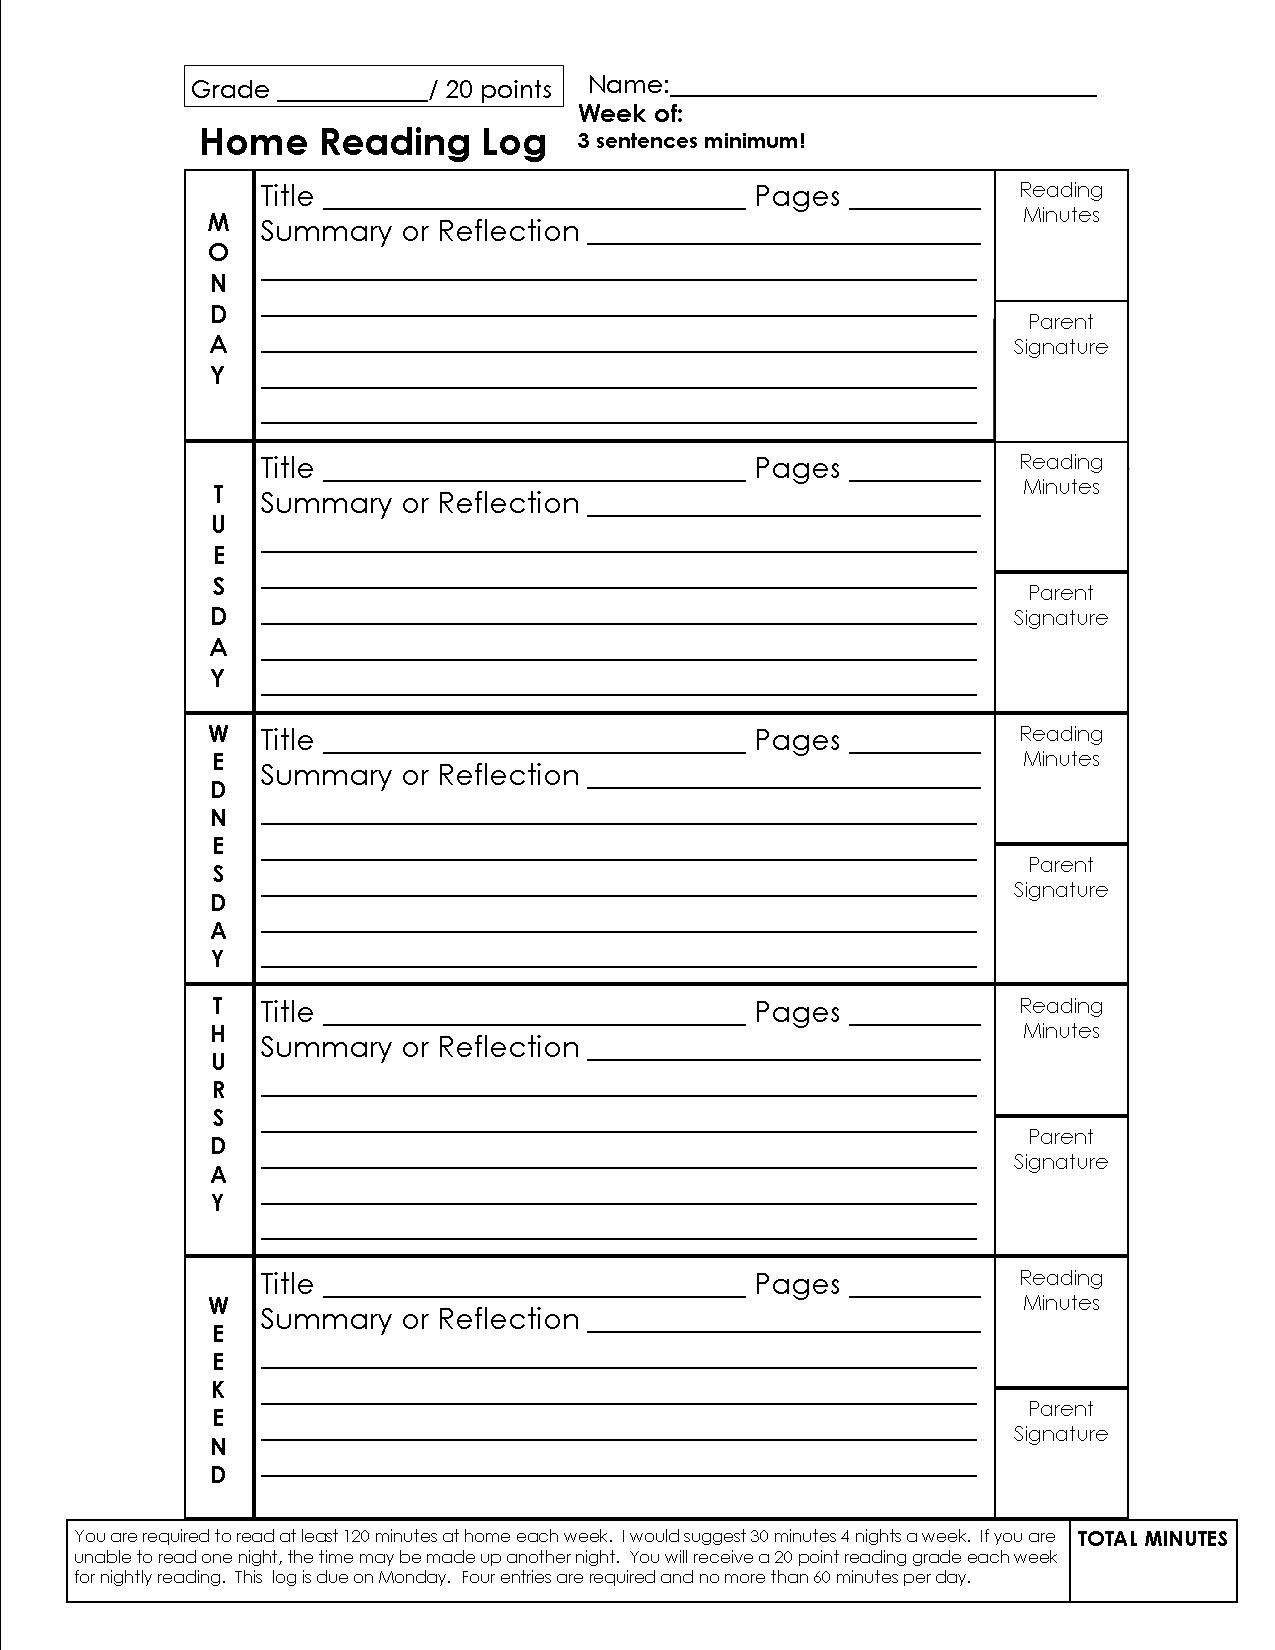 Reading Response Forms For Elementary Schools  Reading Logs For